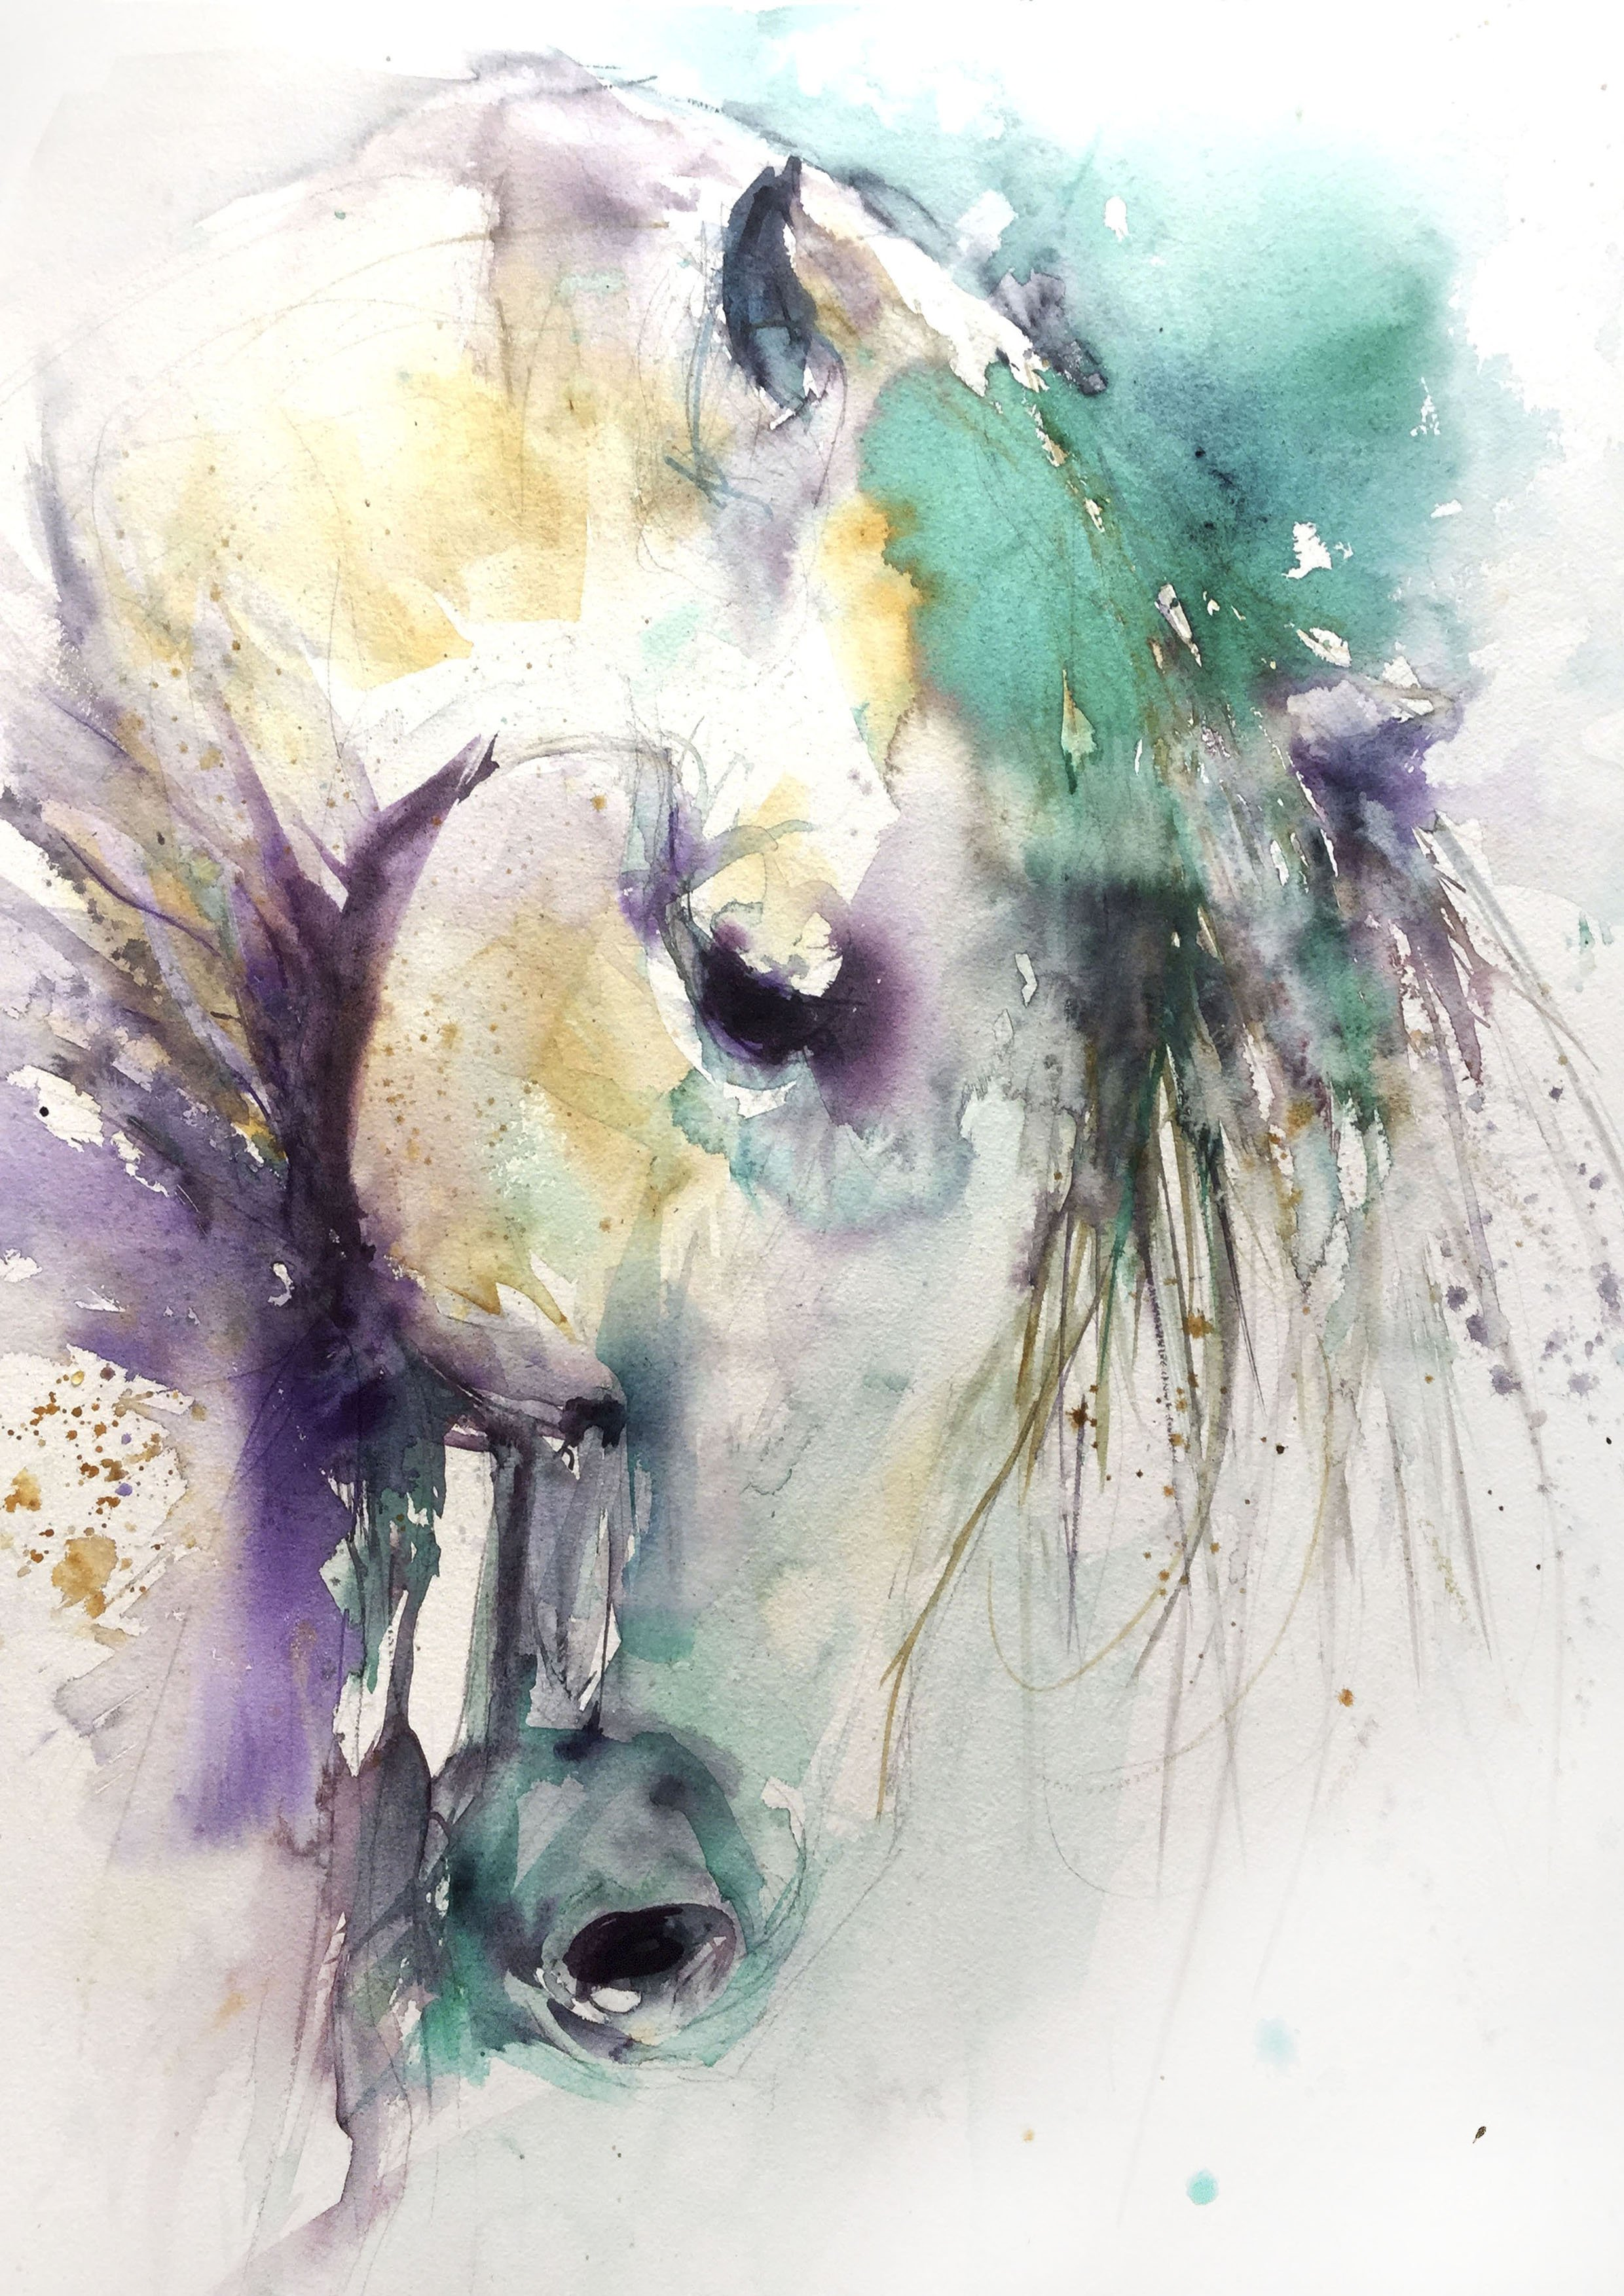 2480x3507 Signed Limited Edition Print From Original Horse Watercolour Painting